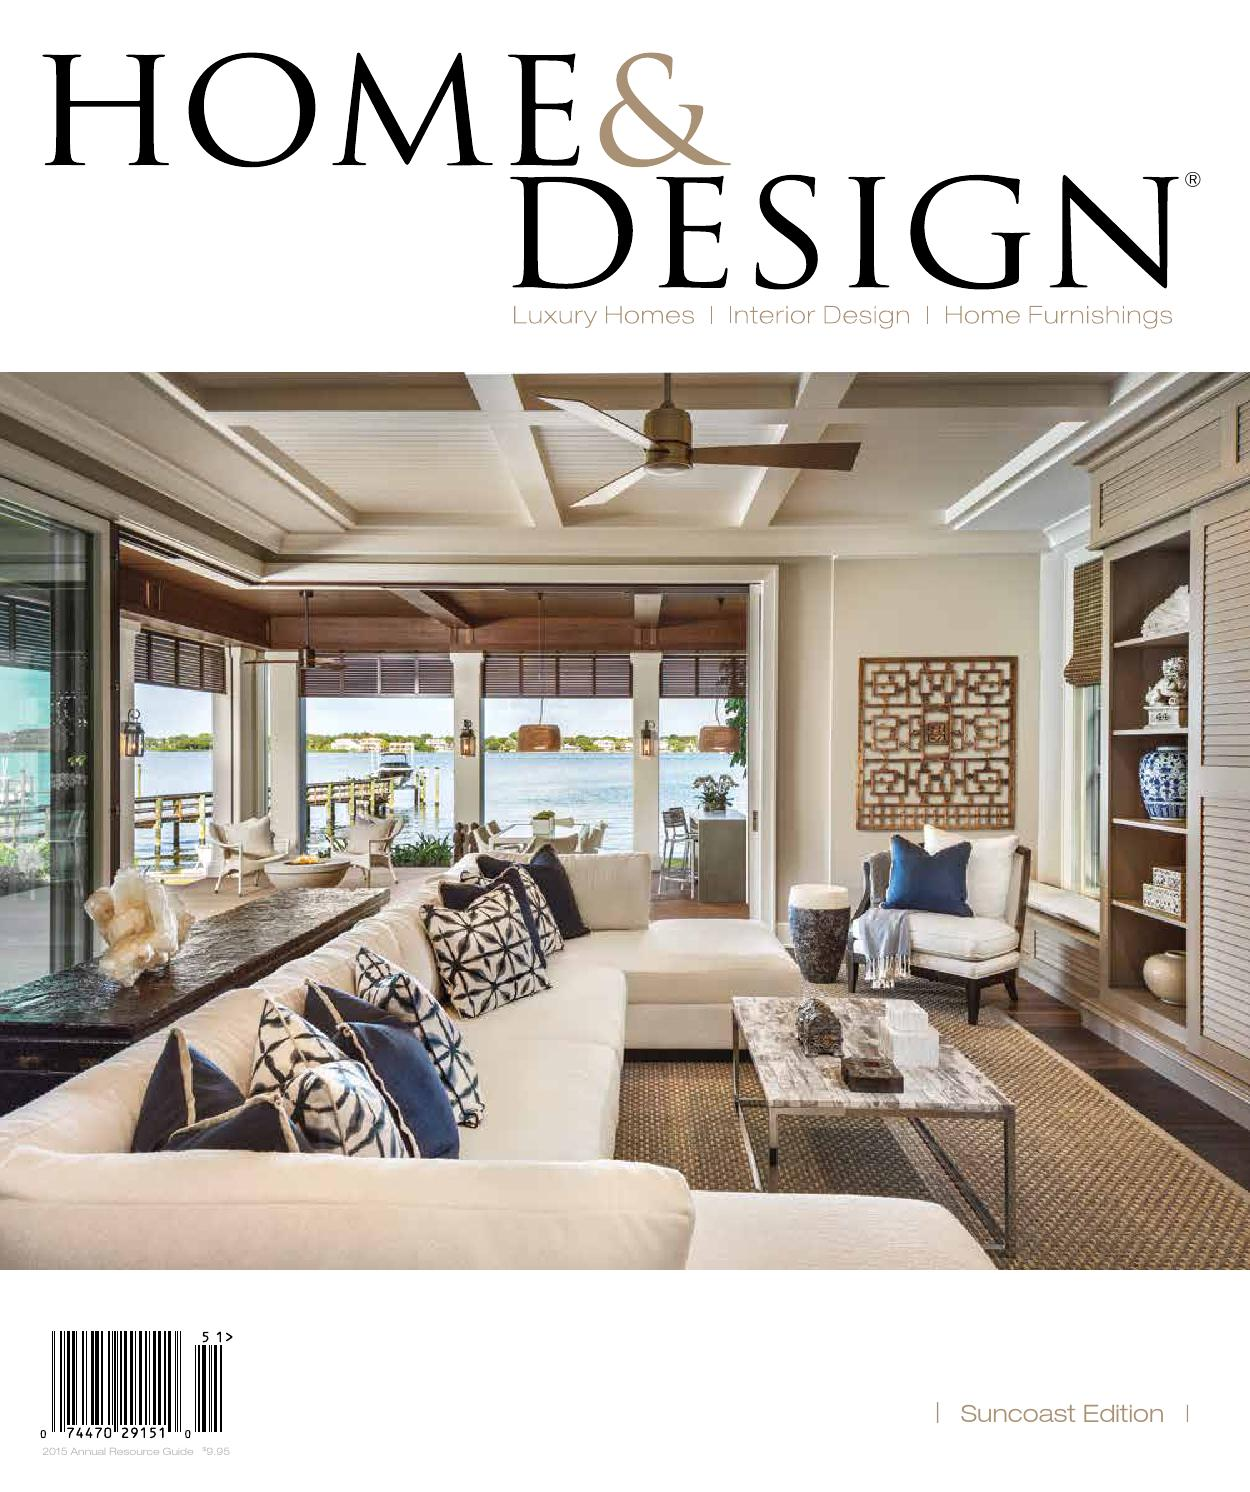 Home Design Magazine home & design magazine | annual resource guide 2015 | suncoast